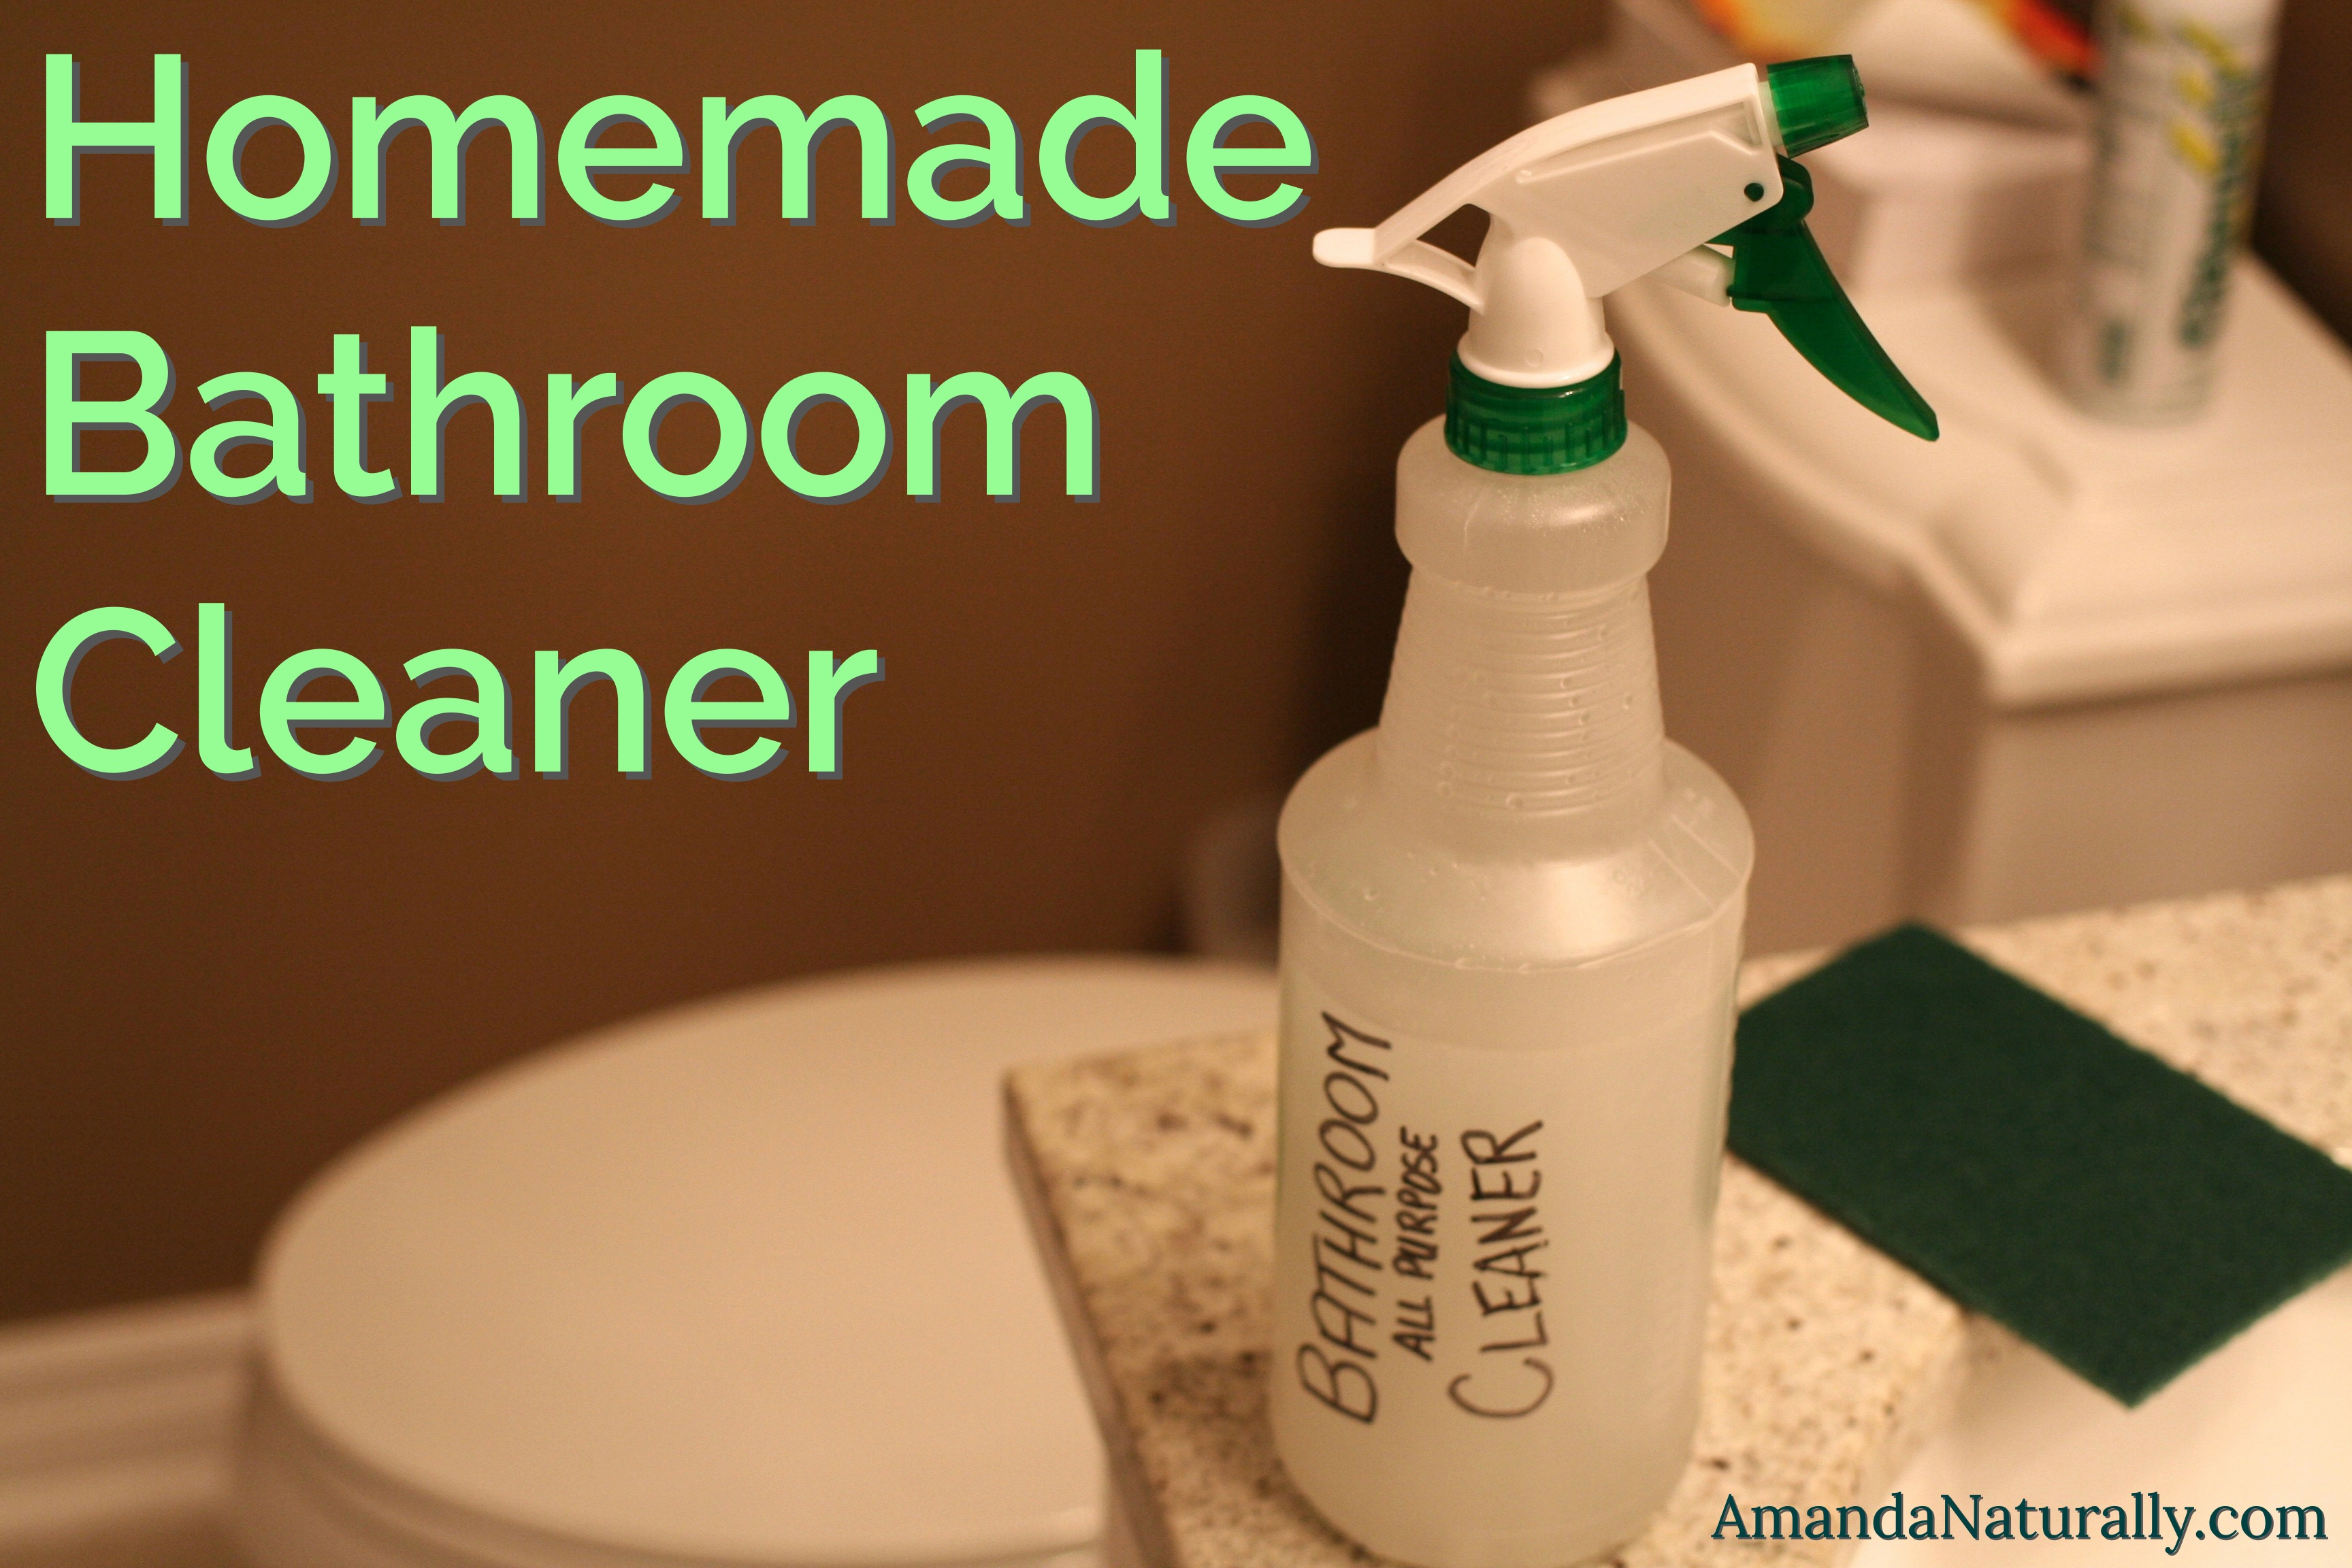 homemade bathrom cleaner amandanaturallycom - Homemade Bathroom Cleaner